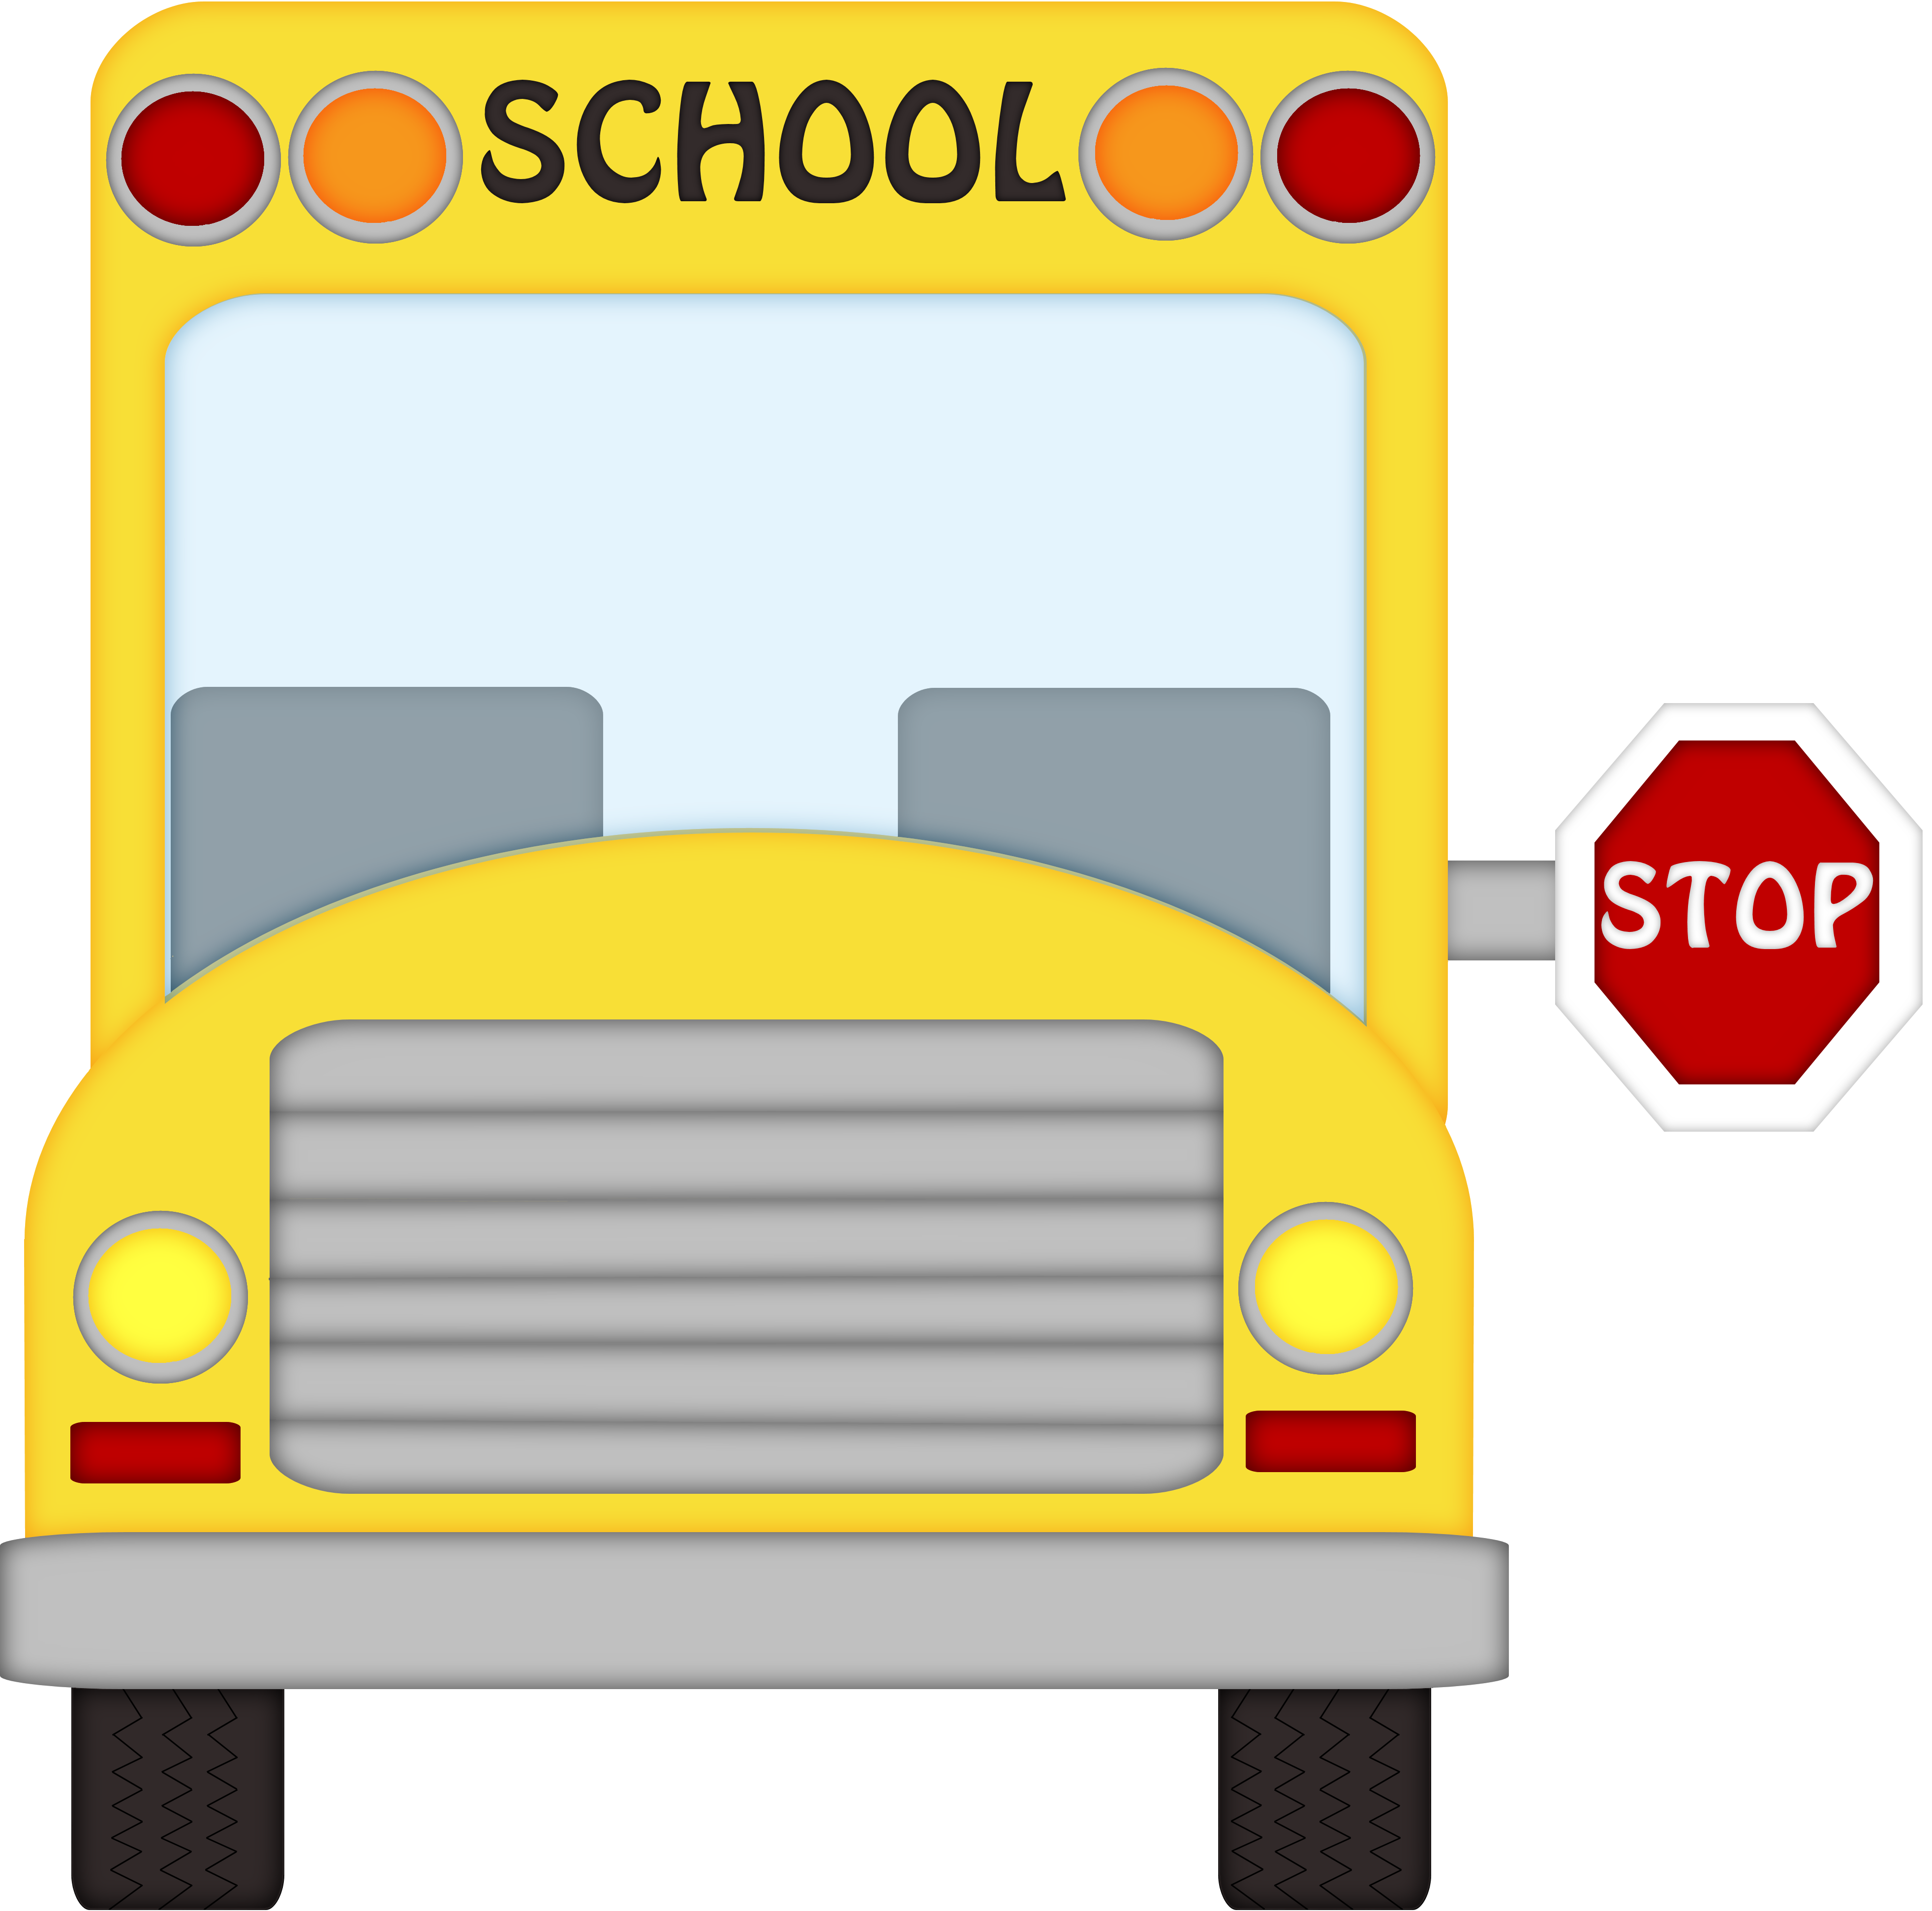 back to school bus clipart - photo #27